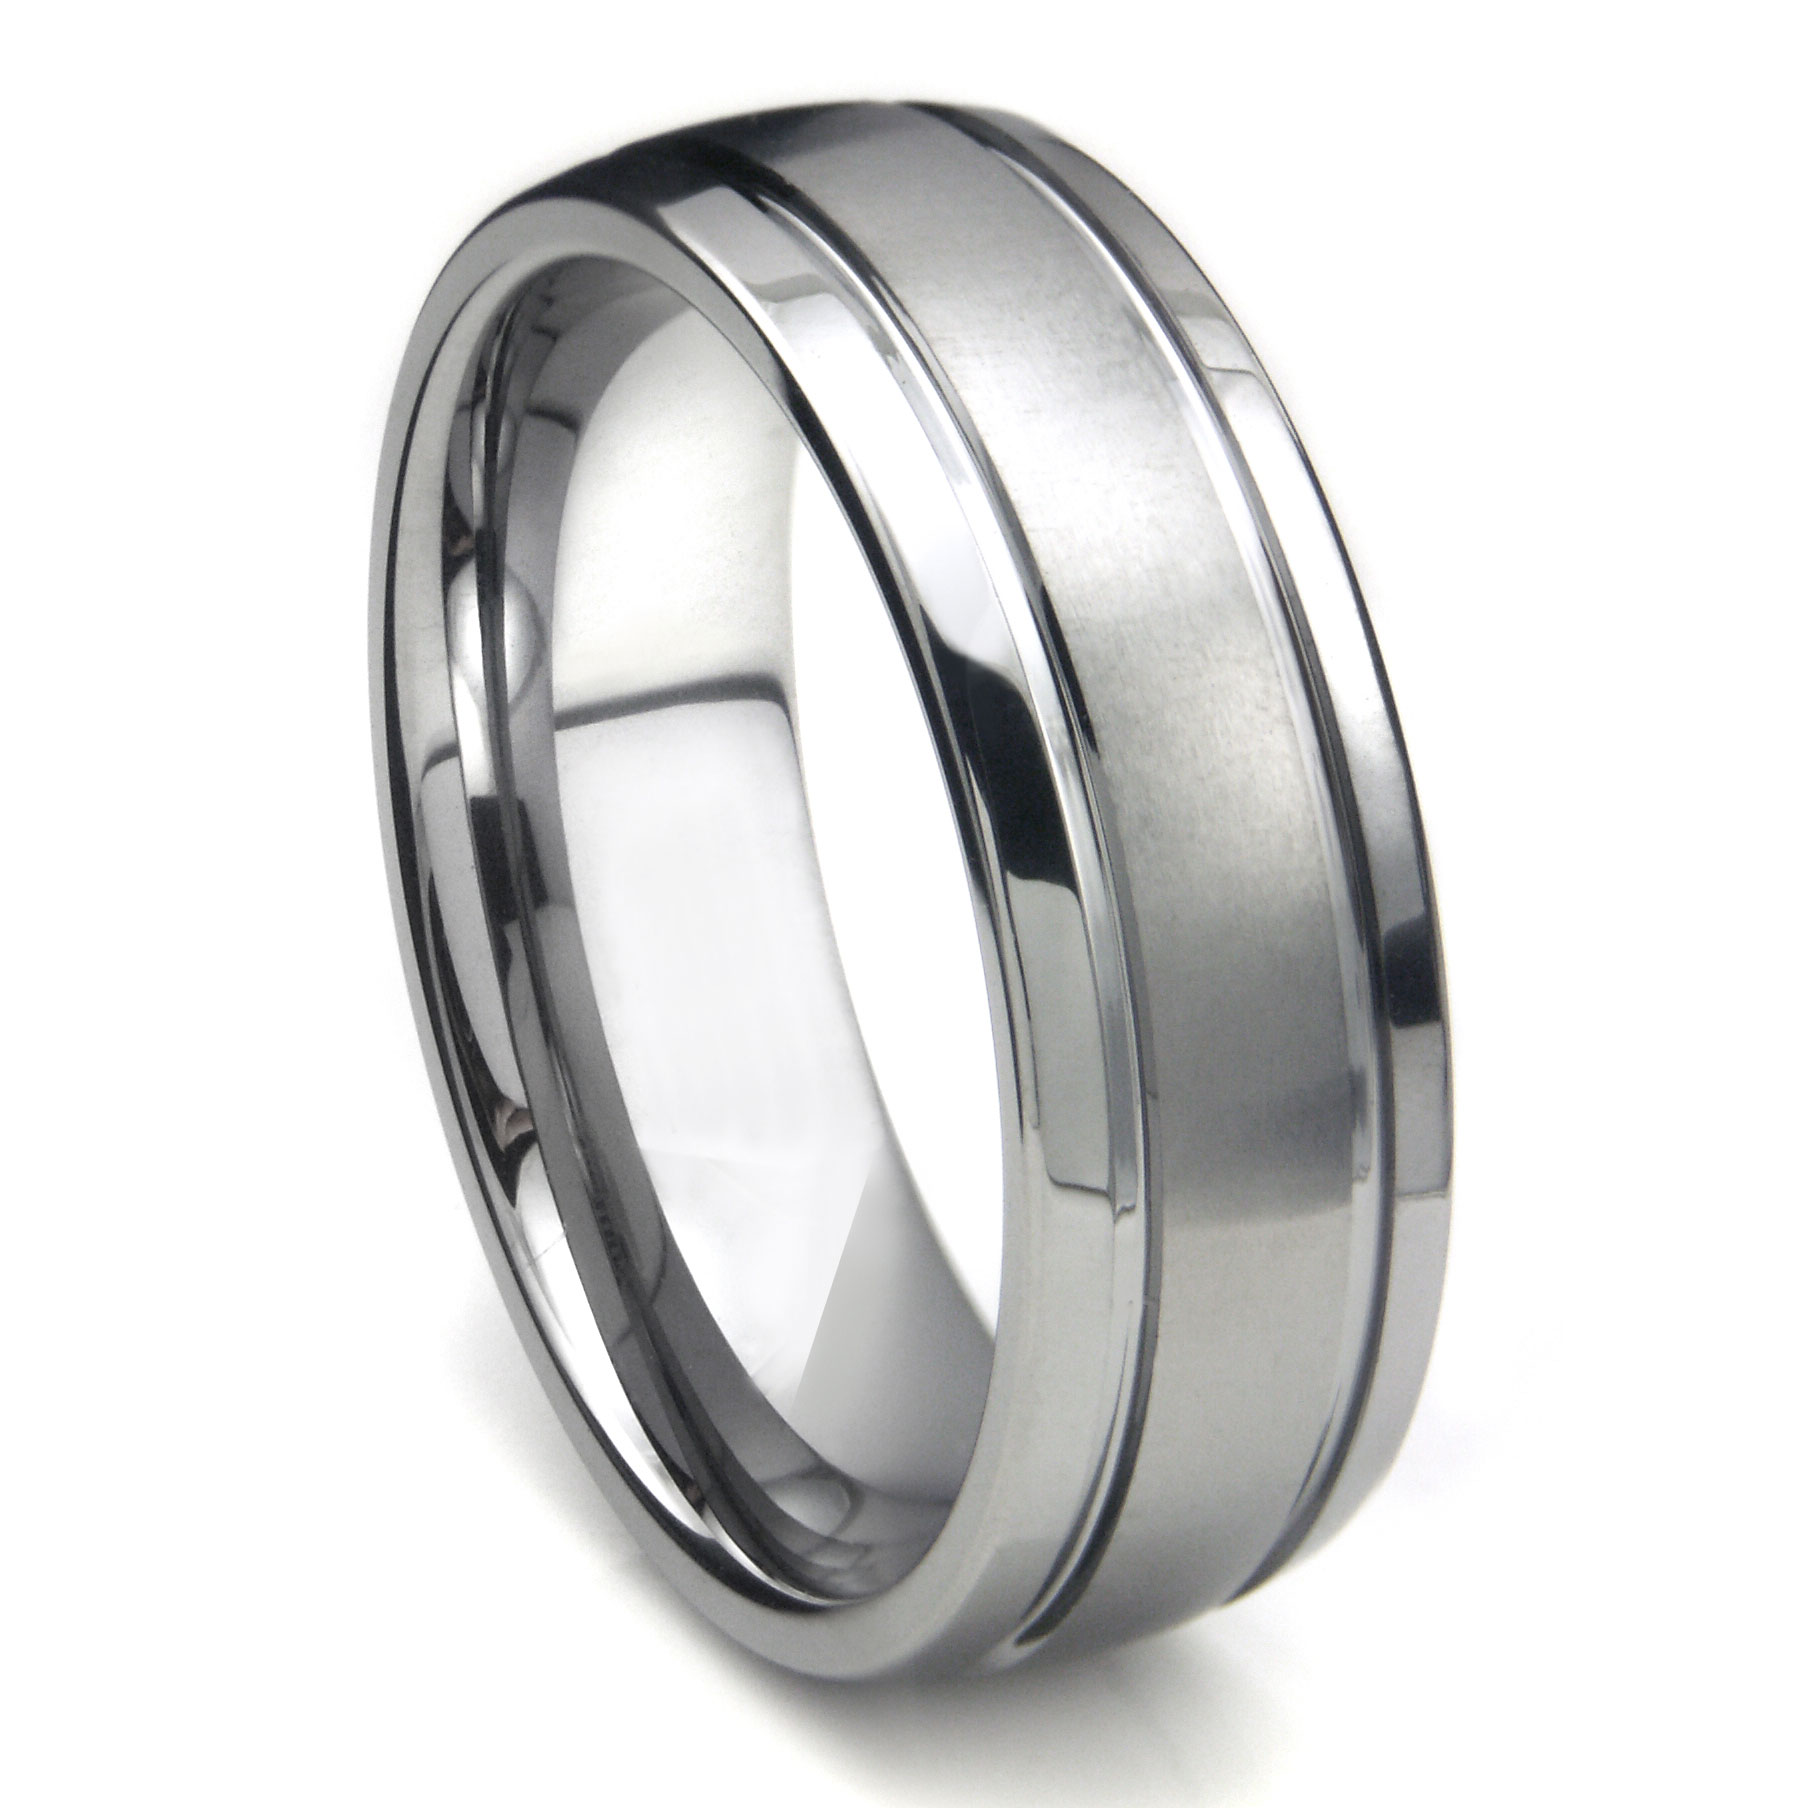 tungsten carbide newport double groove dome wedding band ring. Black Bedroom Furniture Sets. Home Design Ideas